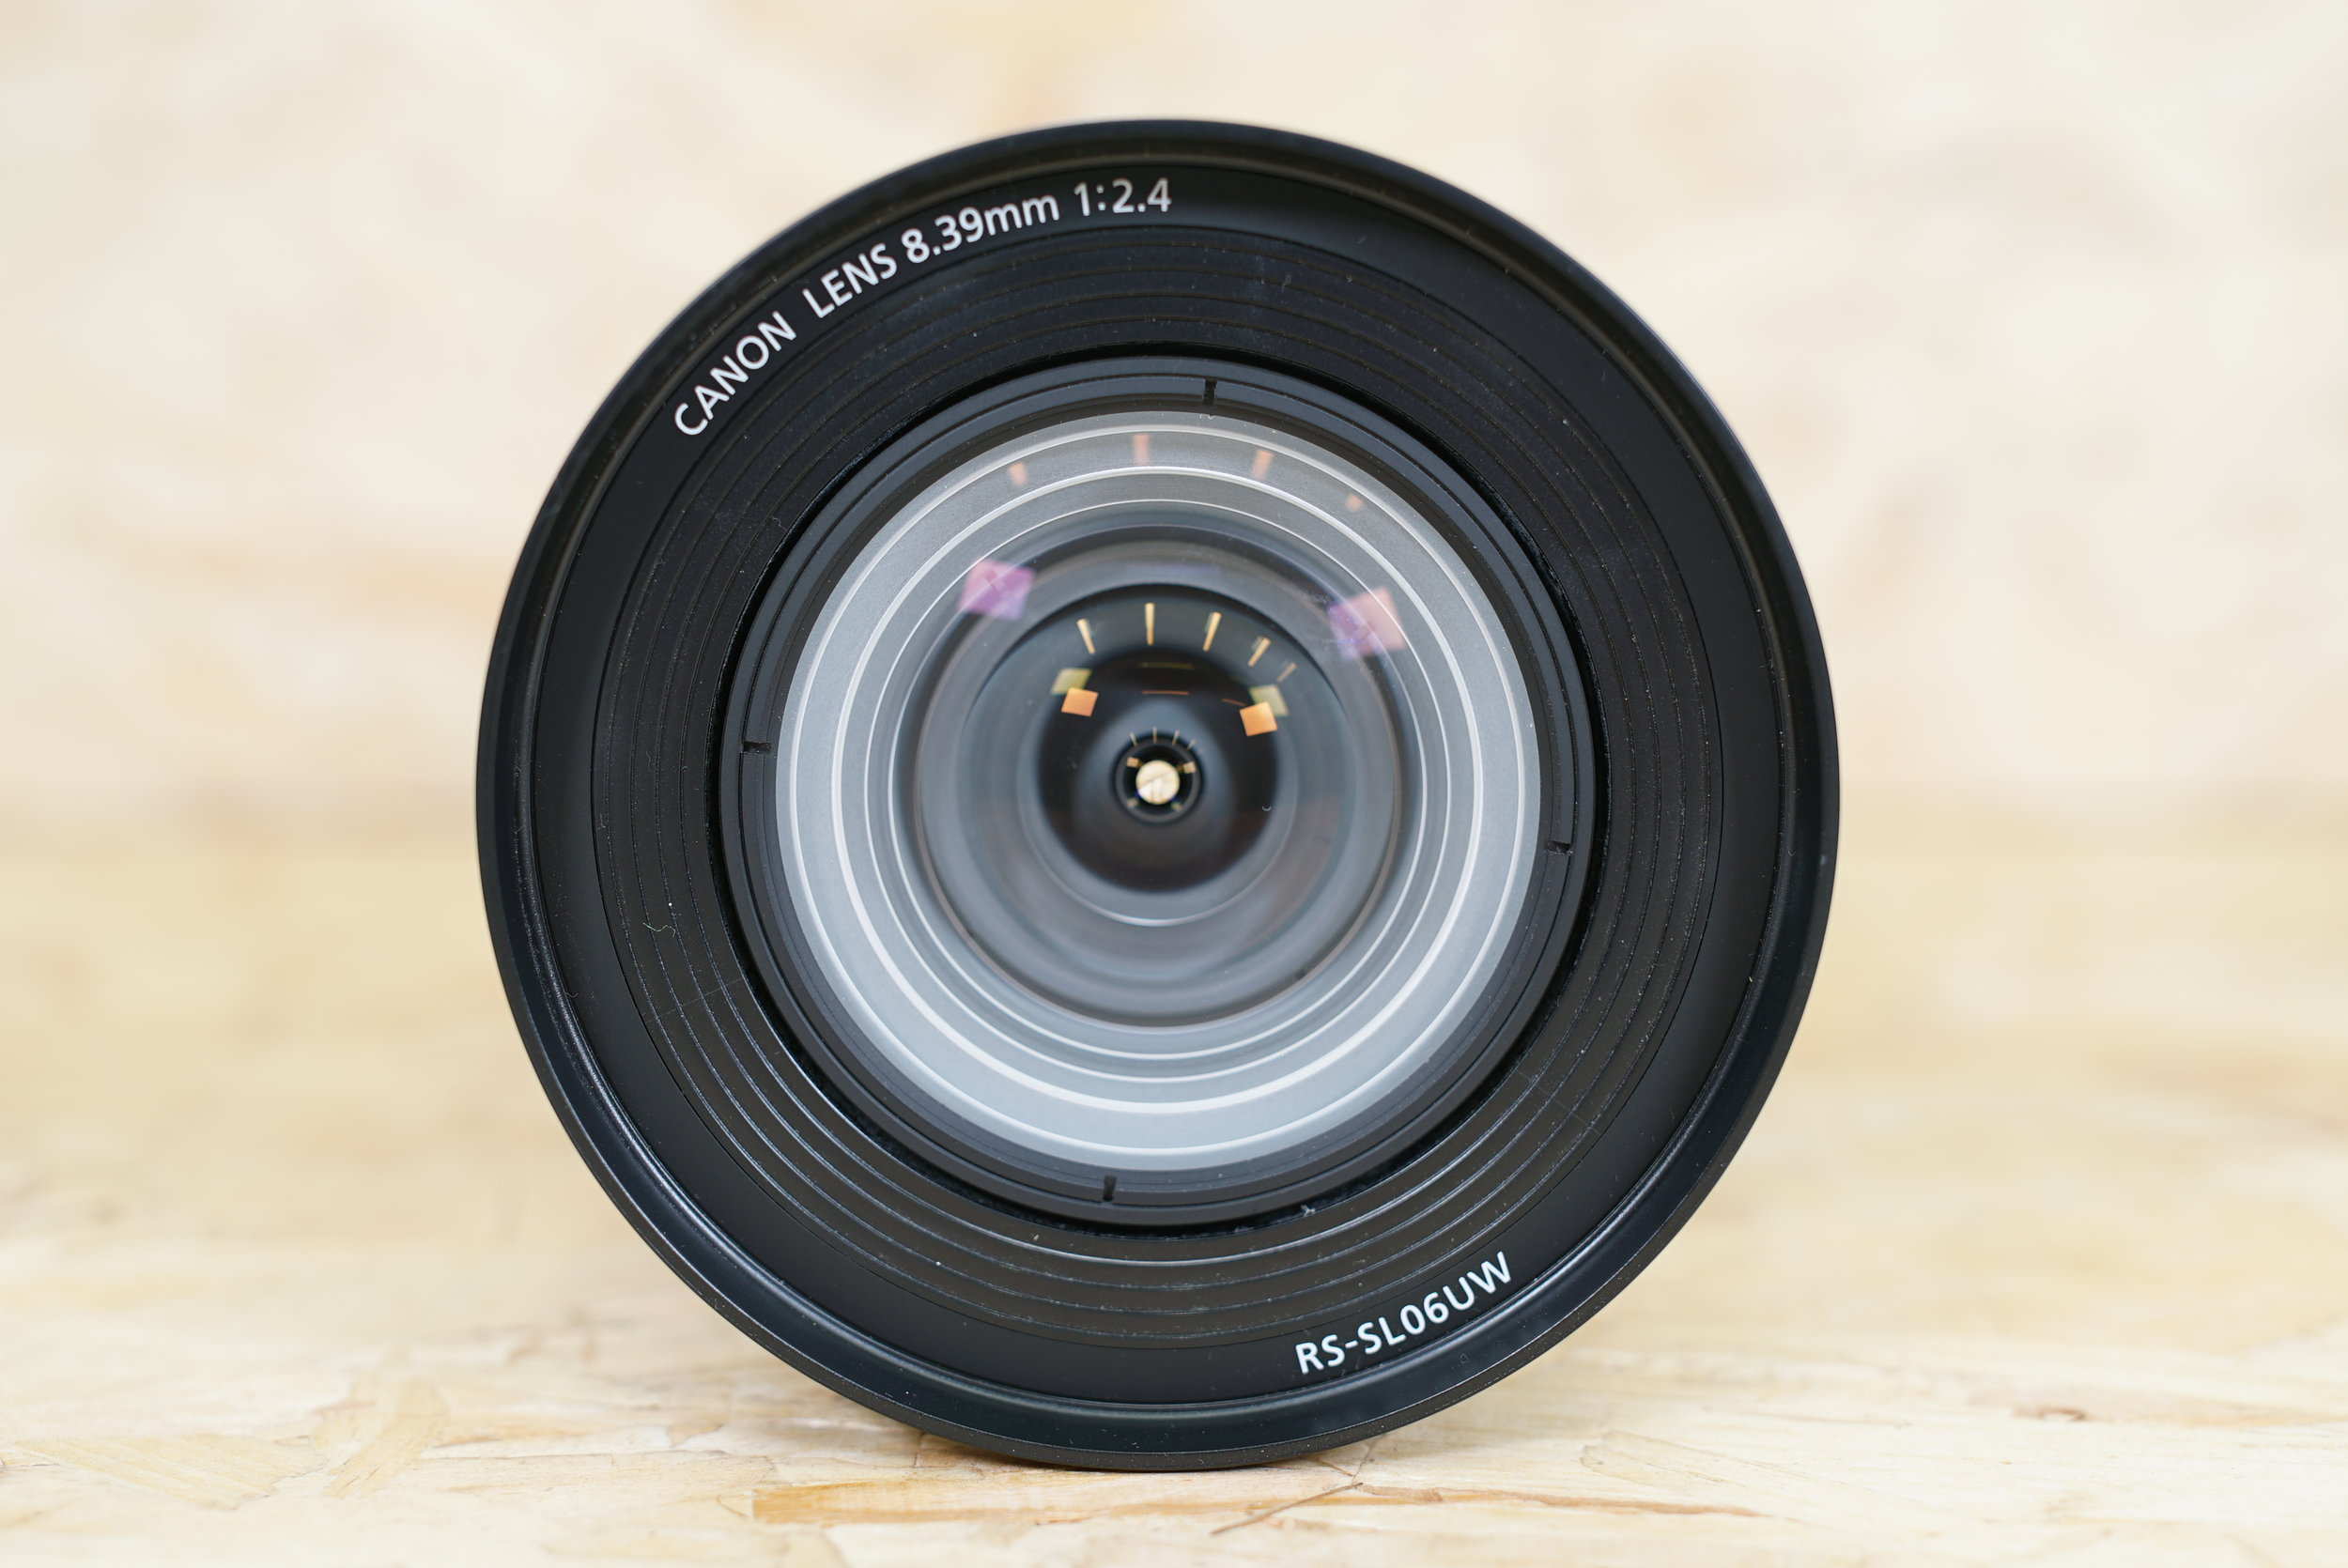 Canon projector lens ready for installation